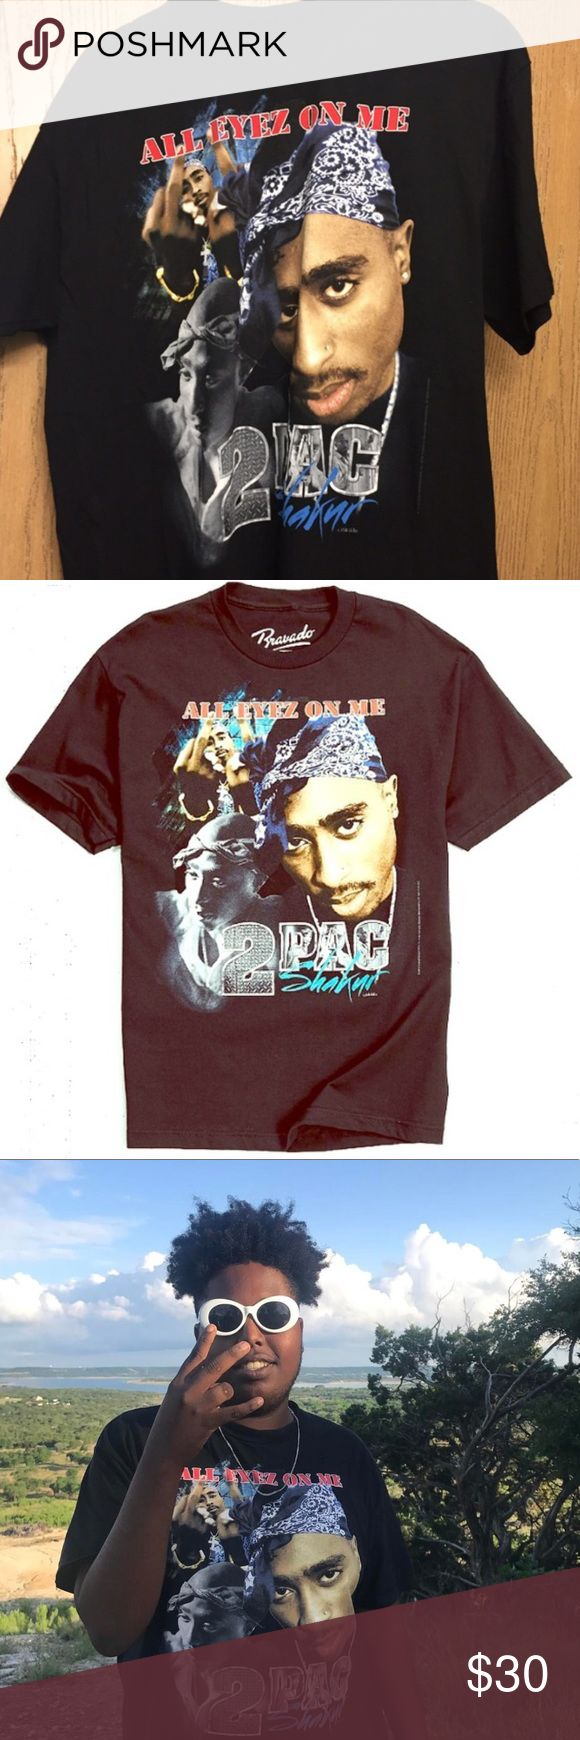 Tupac all eyes on me dope unisex oversized tee!! This is never worn brand new condition, bought from another posher. They listed as vintage so I'm not sure where it's from but used Urban outfitters for Exposure. This shirt is super cool on ladies & gents as you see above. 🤗🤗🙌🏽 Urban Outfitters Tops Tees - Short Sleeve